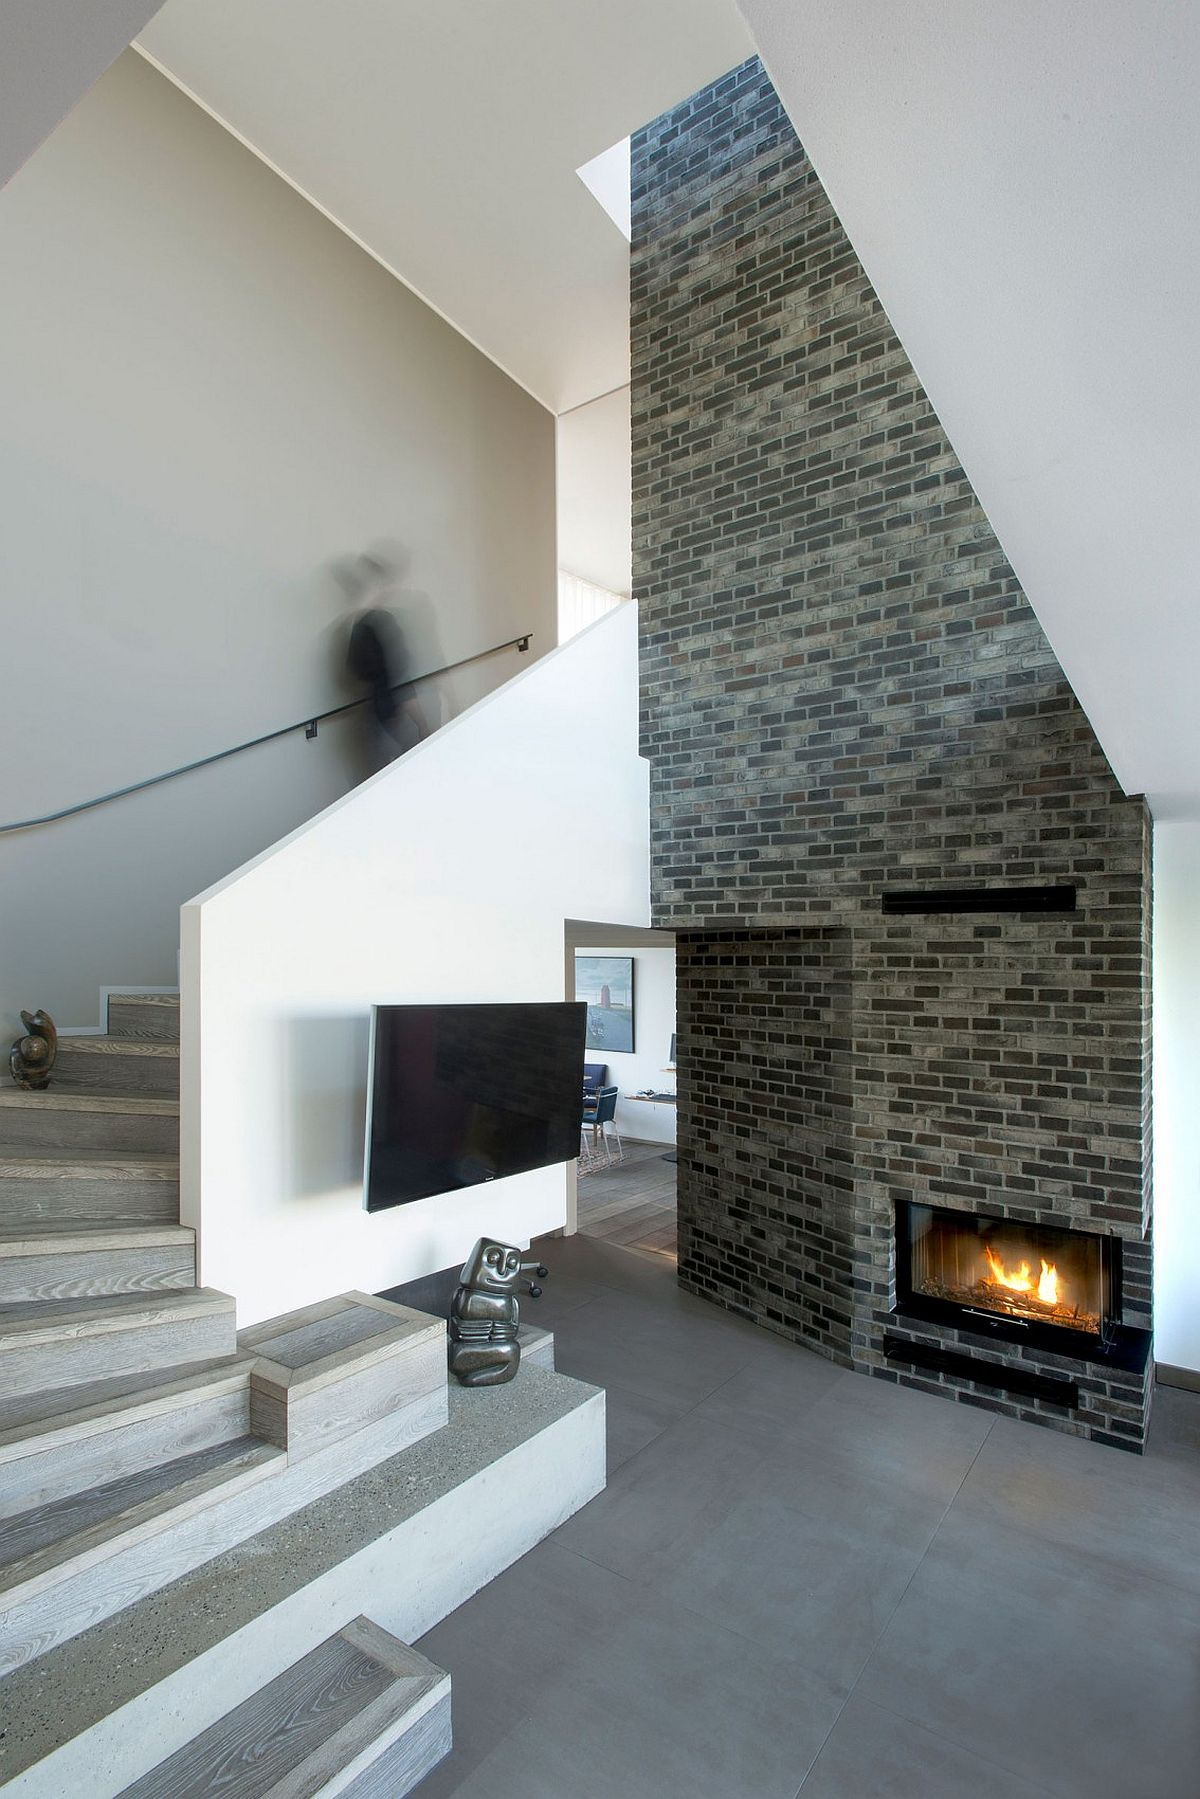 Sculptural staircase and brick fireplace inside the contemporary residence in Denmark